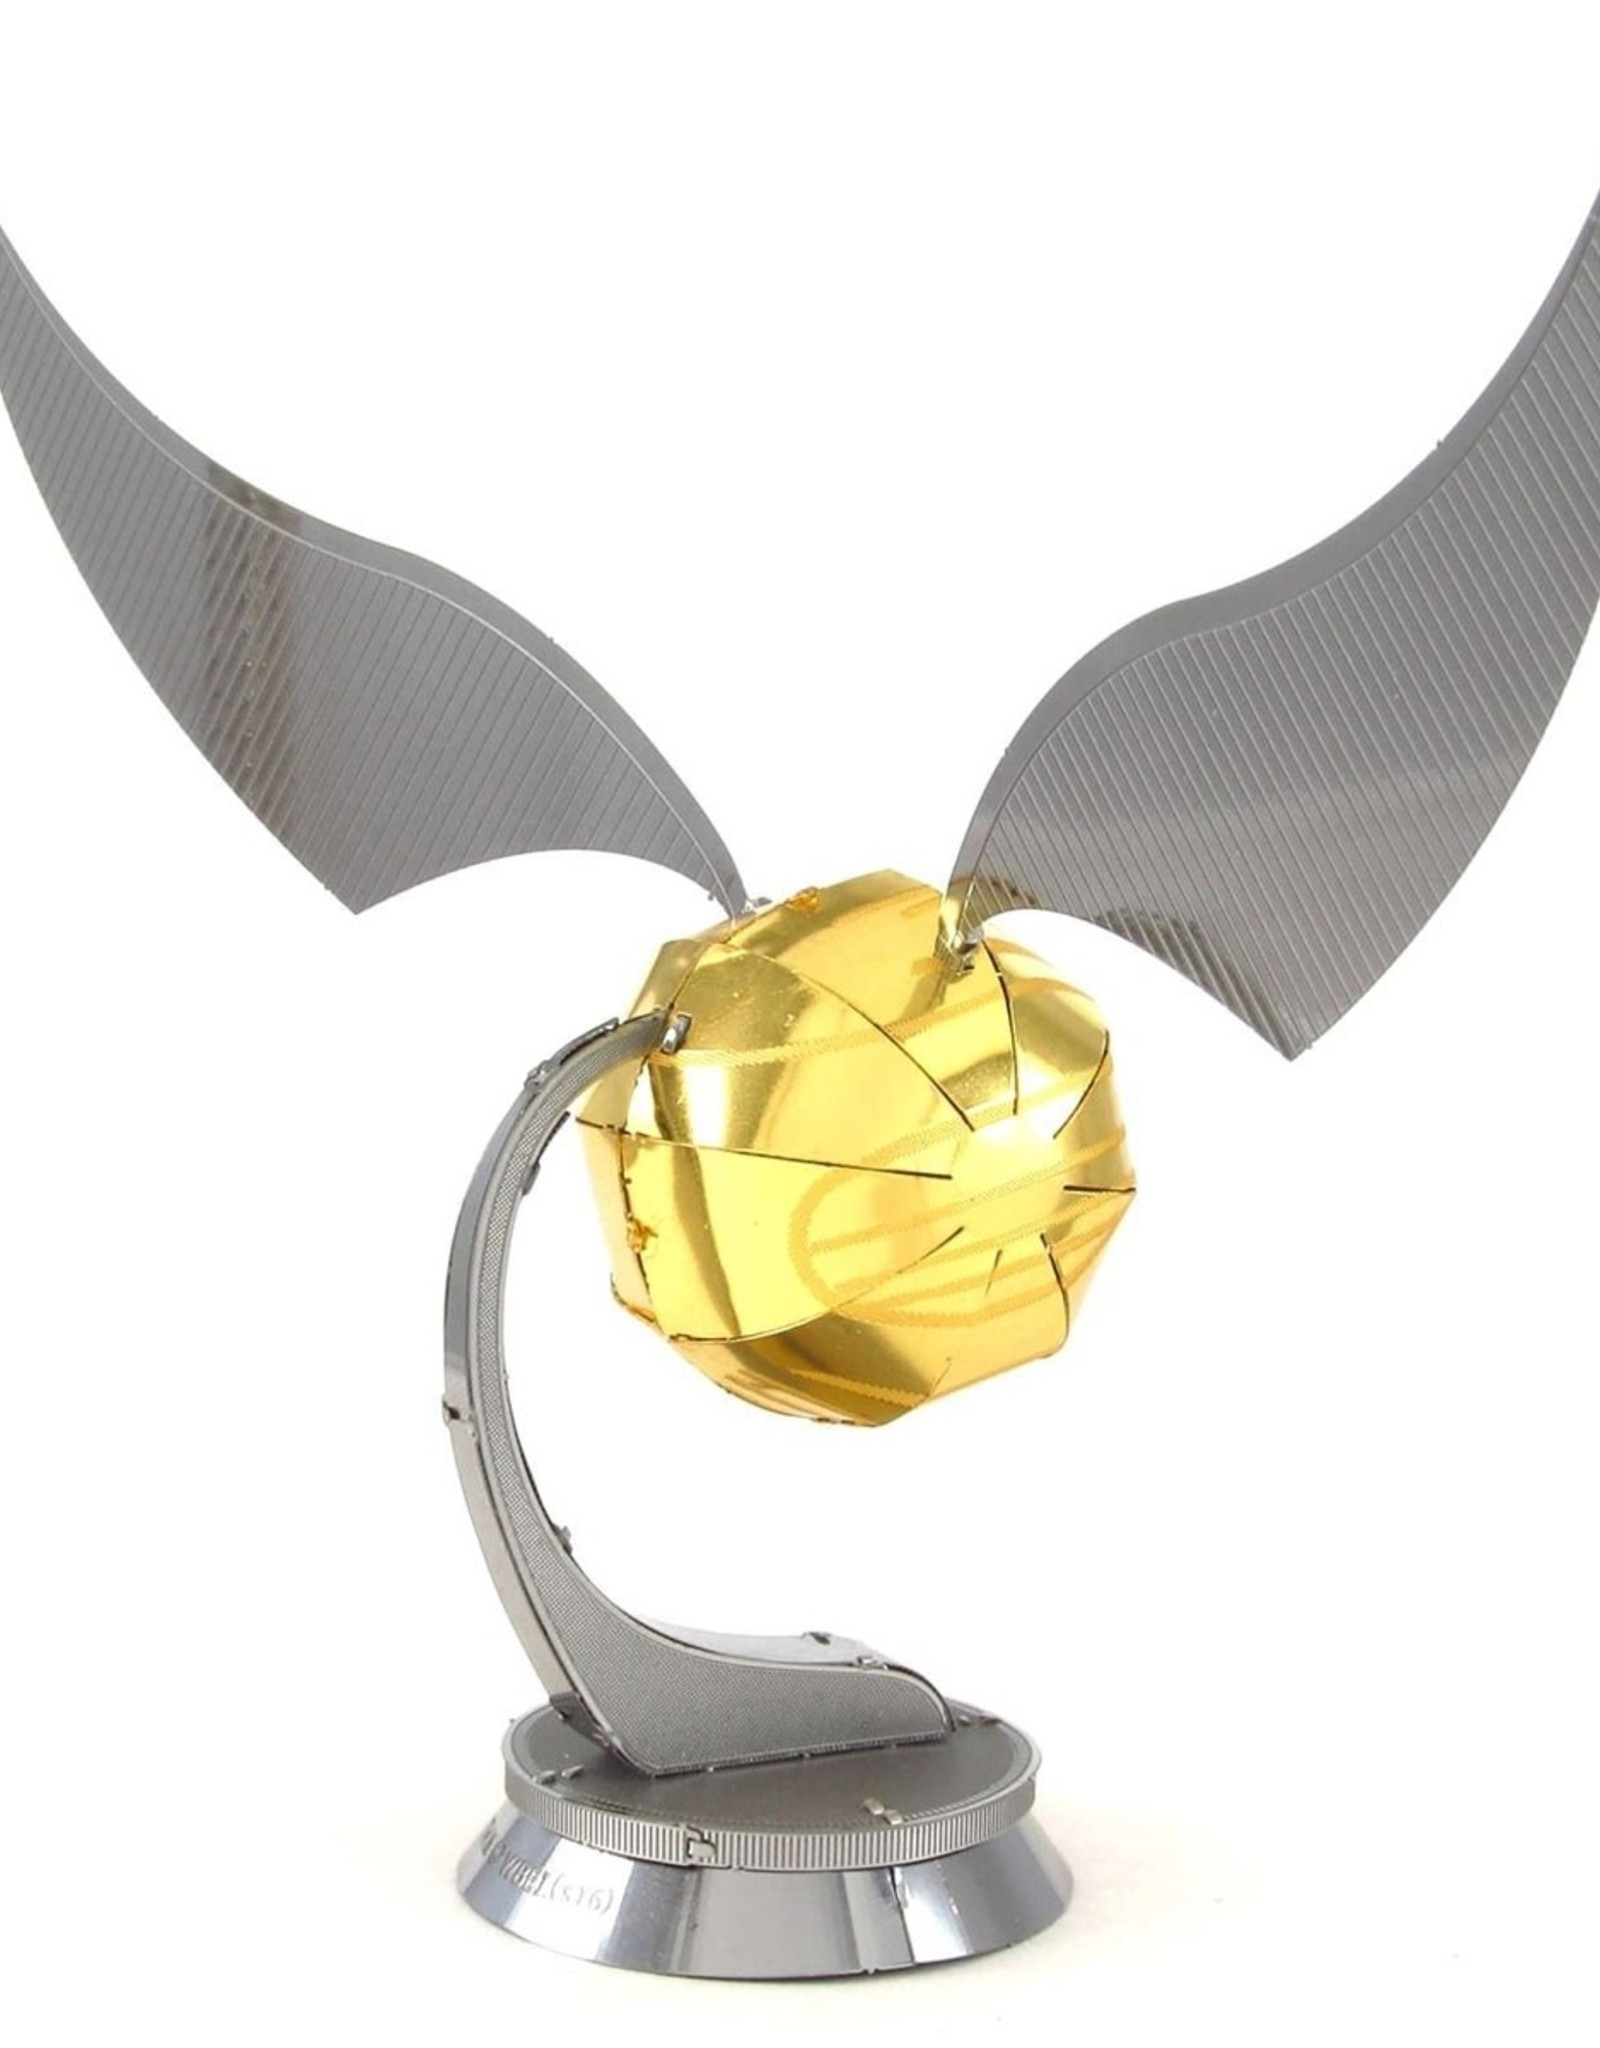 MetalEarth M.E., H. Potter Golden Snitch, 2 sheets